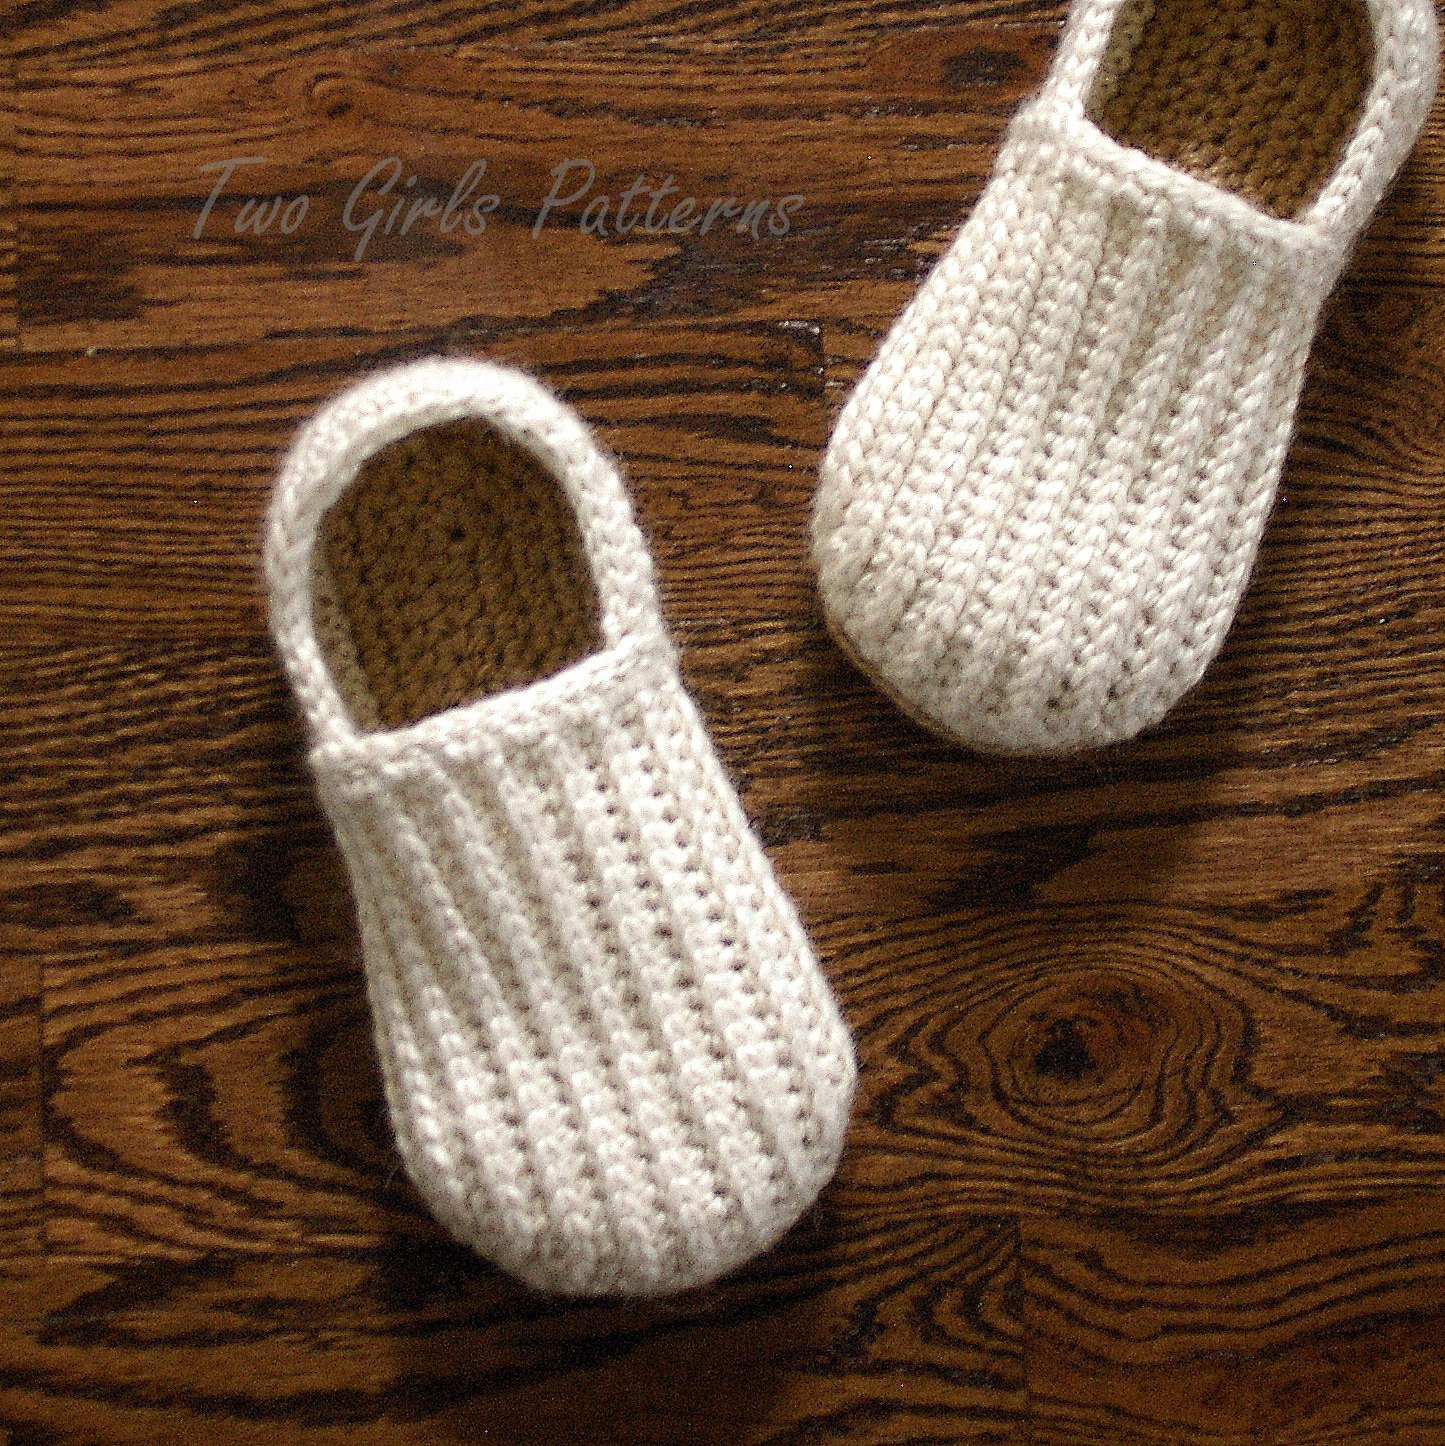 Crochet Slipper Pattern Beautiful Crochet Pattern for Mens House Shoes the Lazy Day Loafers Of Gorgeous 44 Pics Crochet Slipper Pattern